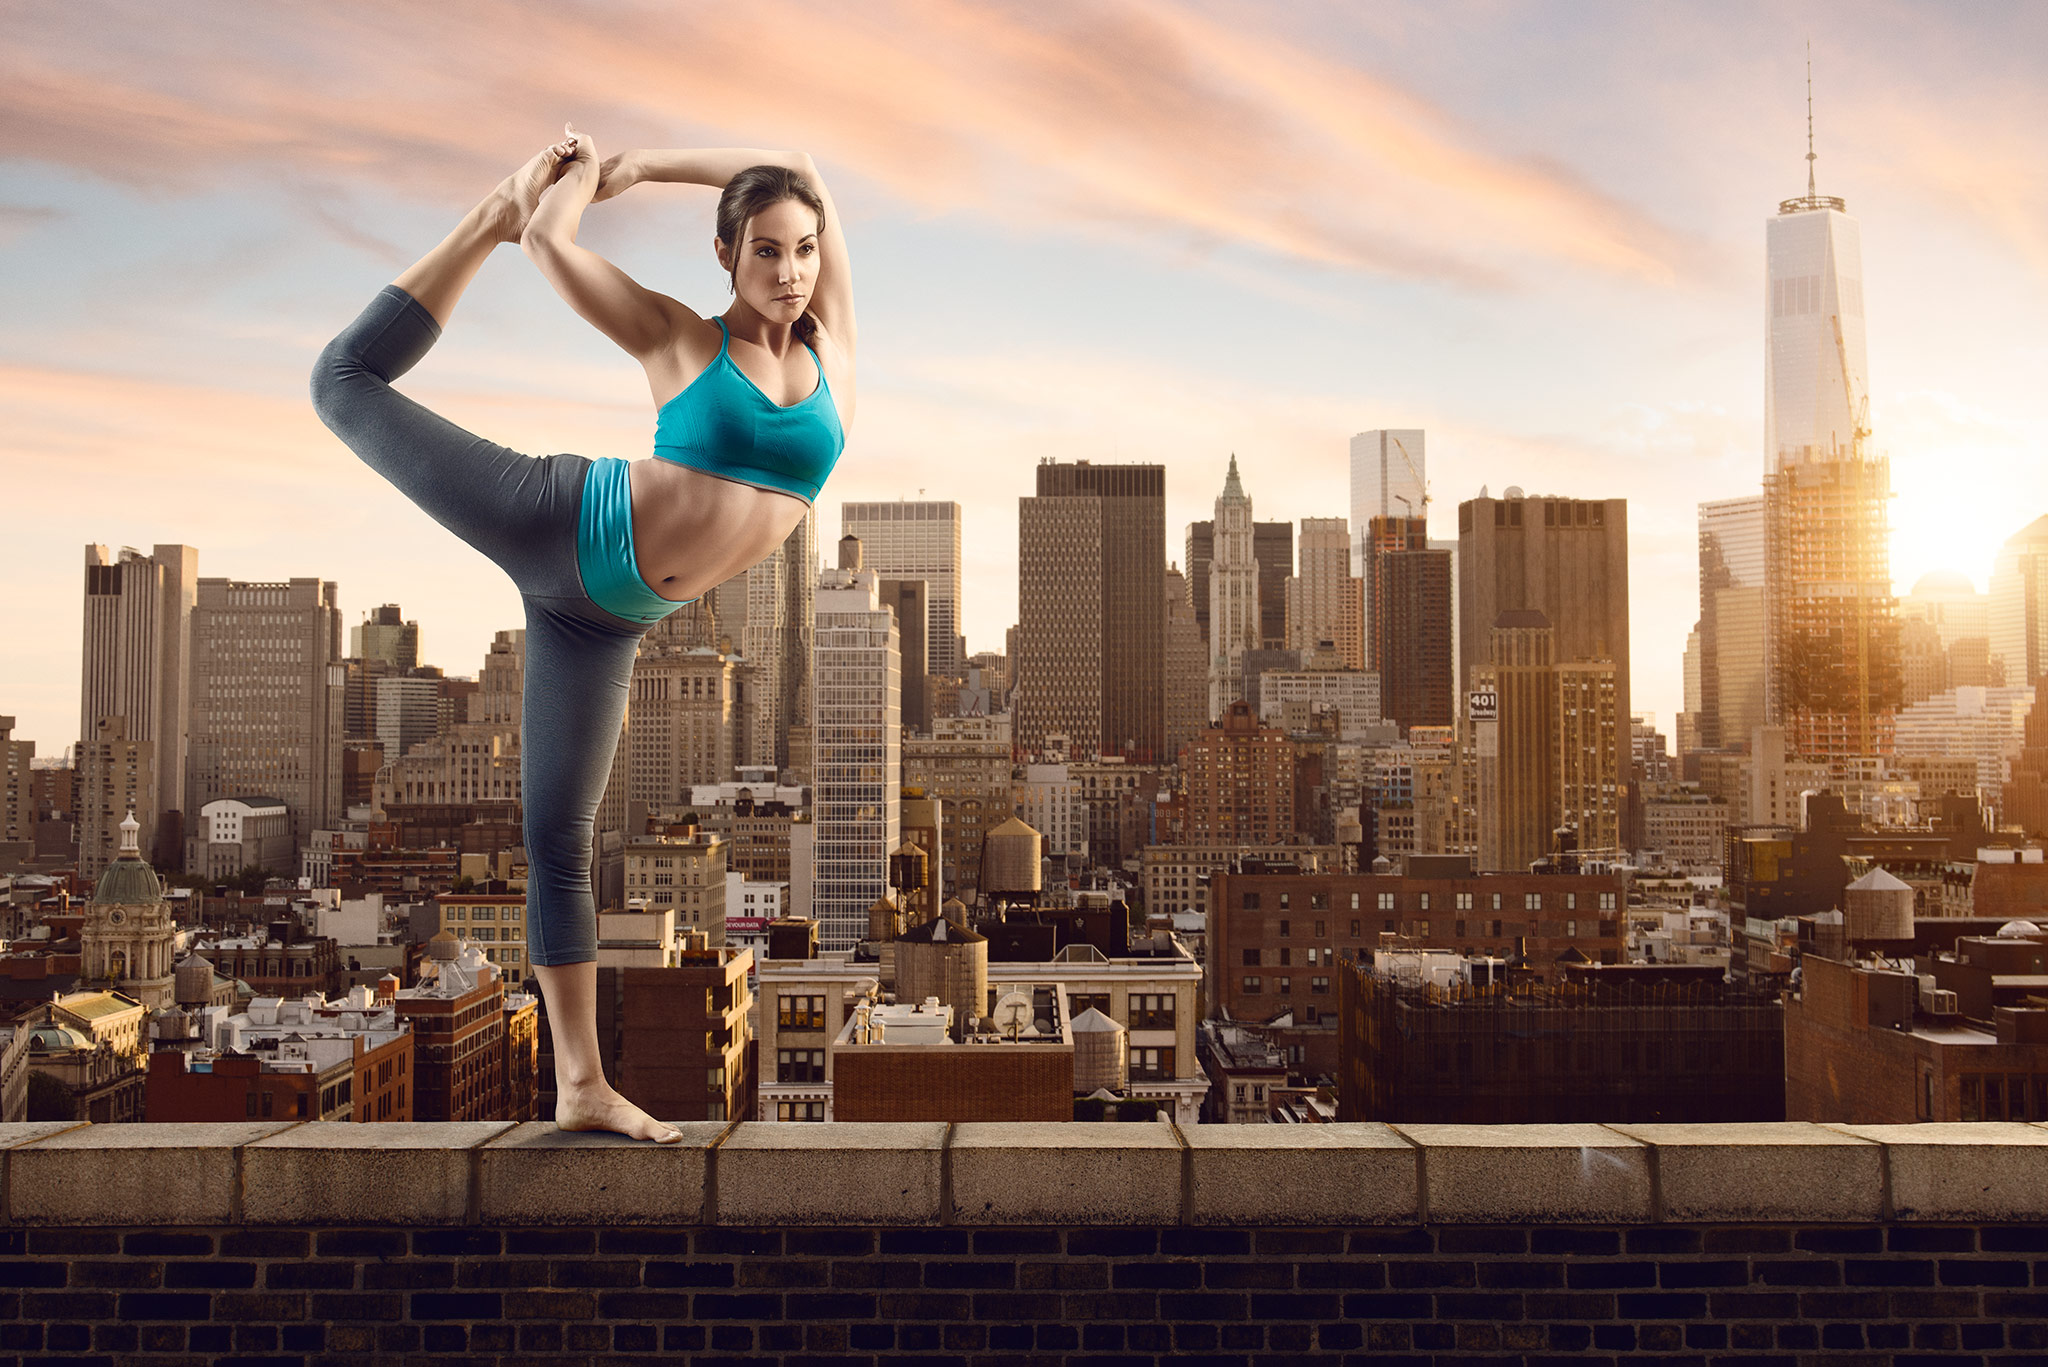 Woman Stretching On Ledge In City